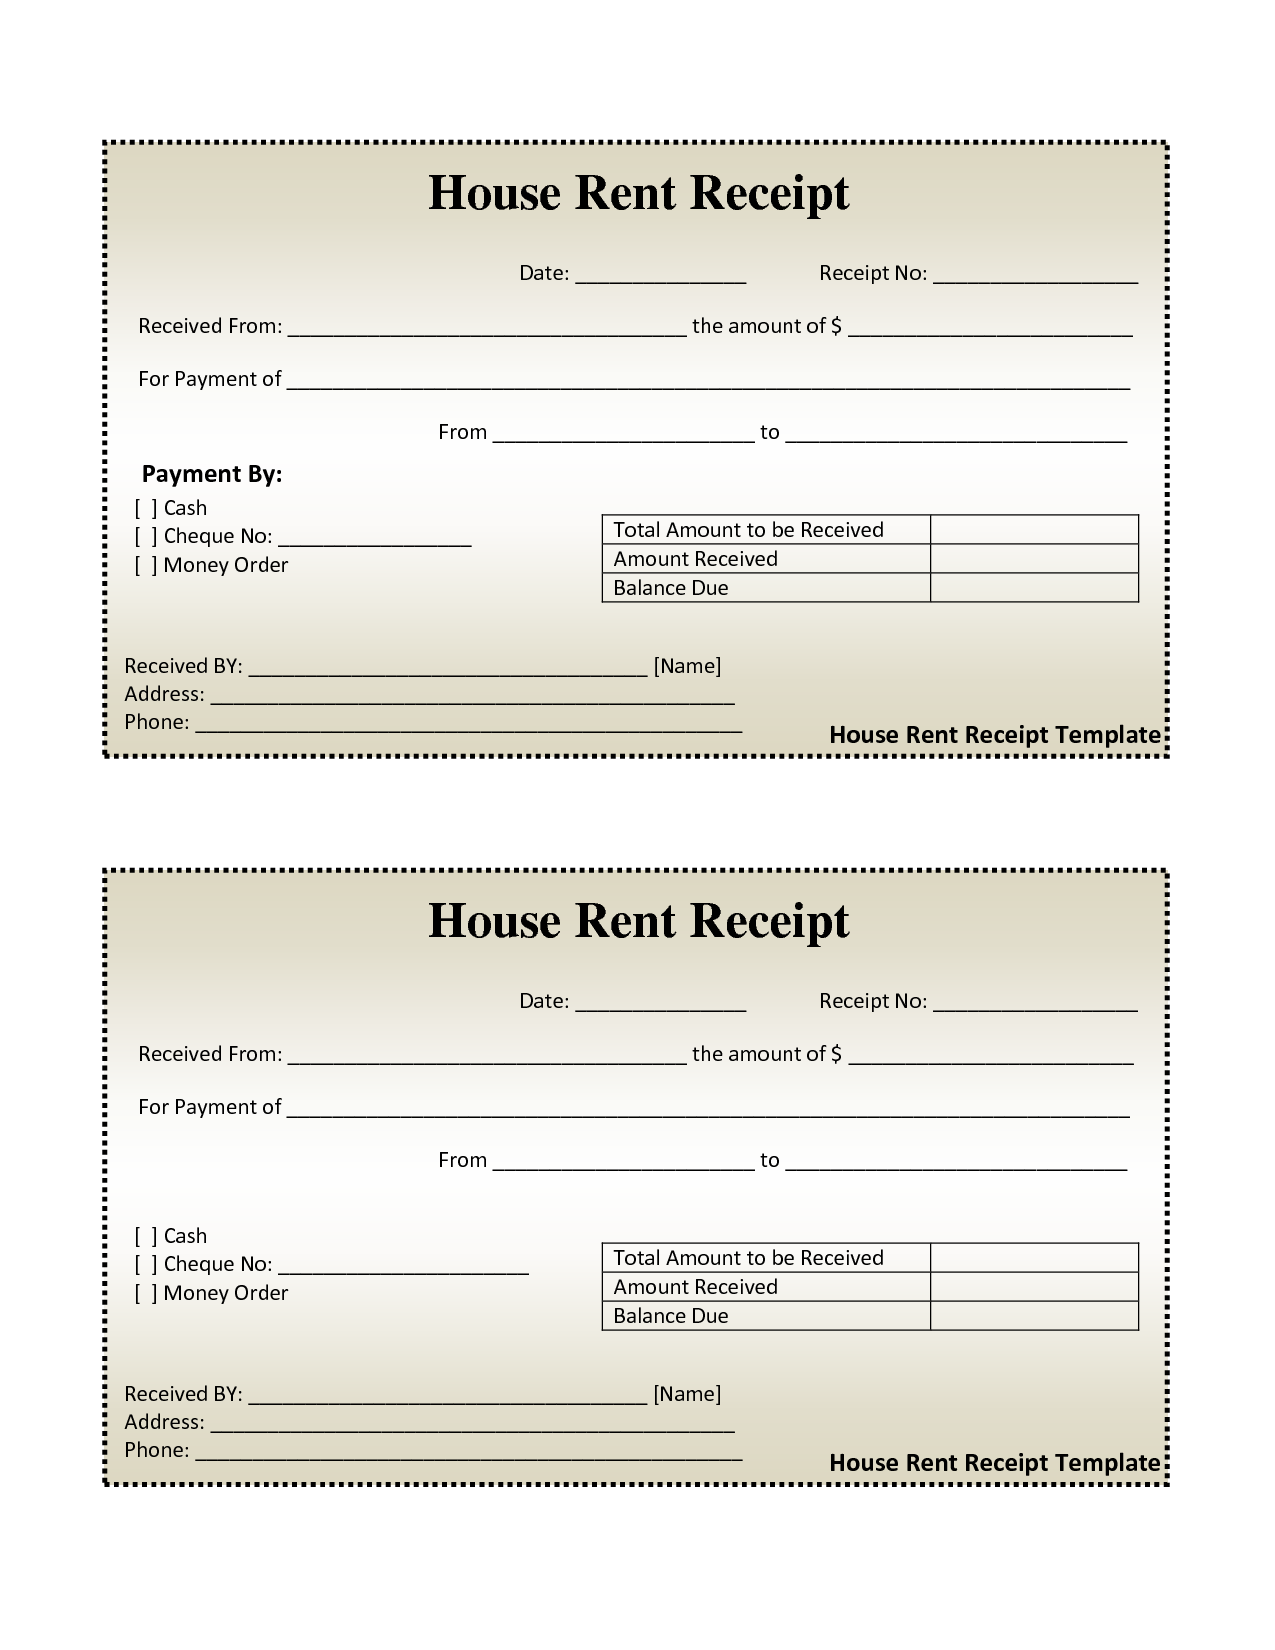 Printable Rent Receipts Printable Rent Receipt TemplateRental – House Rent Slips